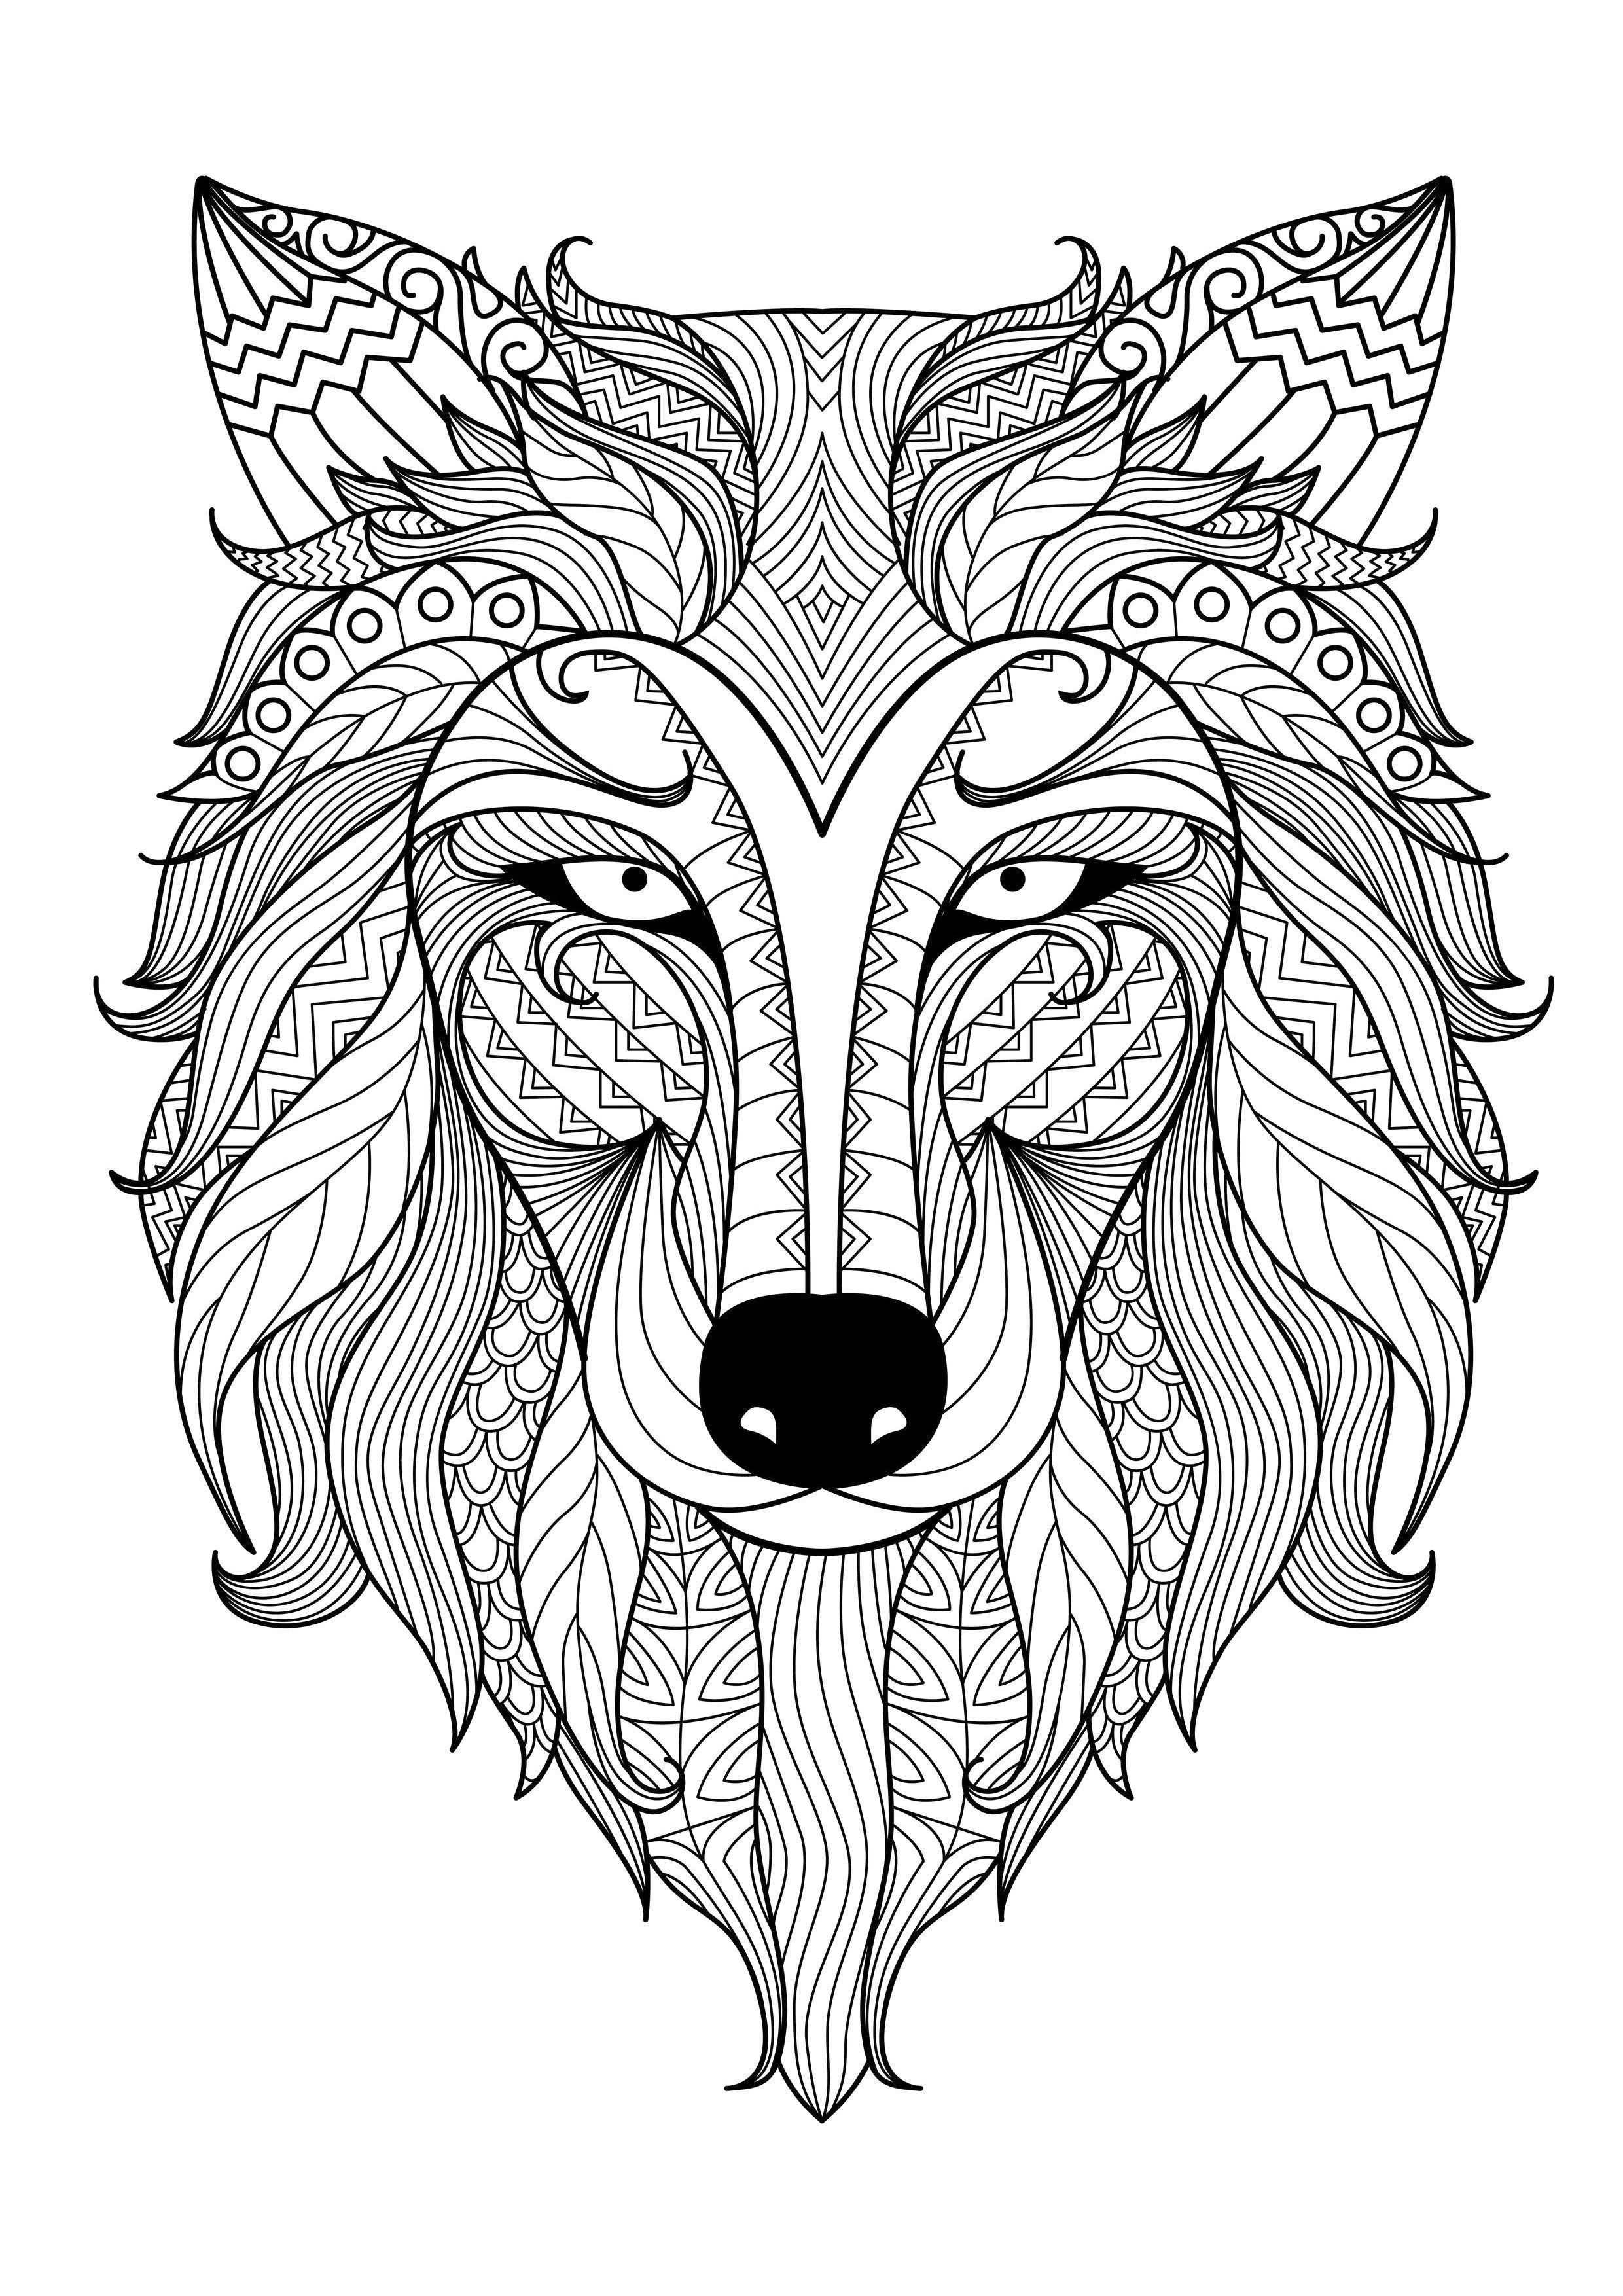 Animal mandala coloring pages for adults through the thousand pictures on the net with regards to animal mandala coloring pages for adults we all